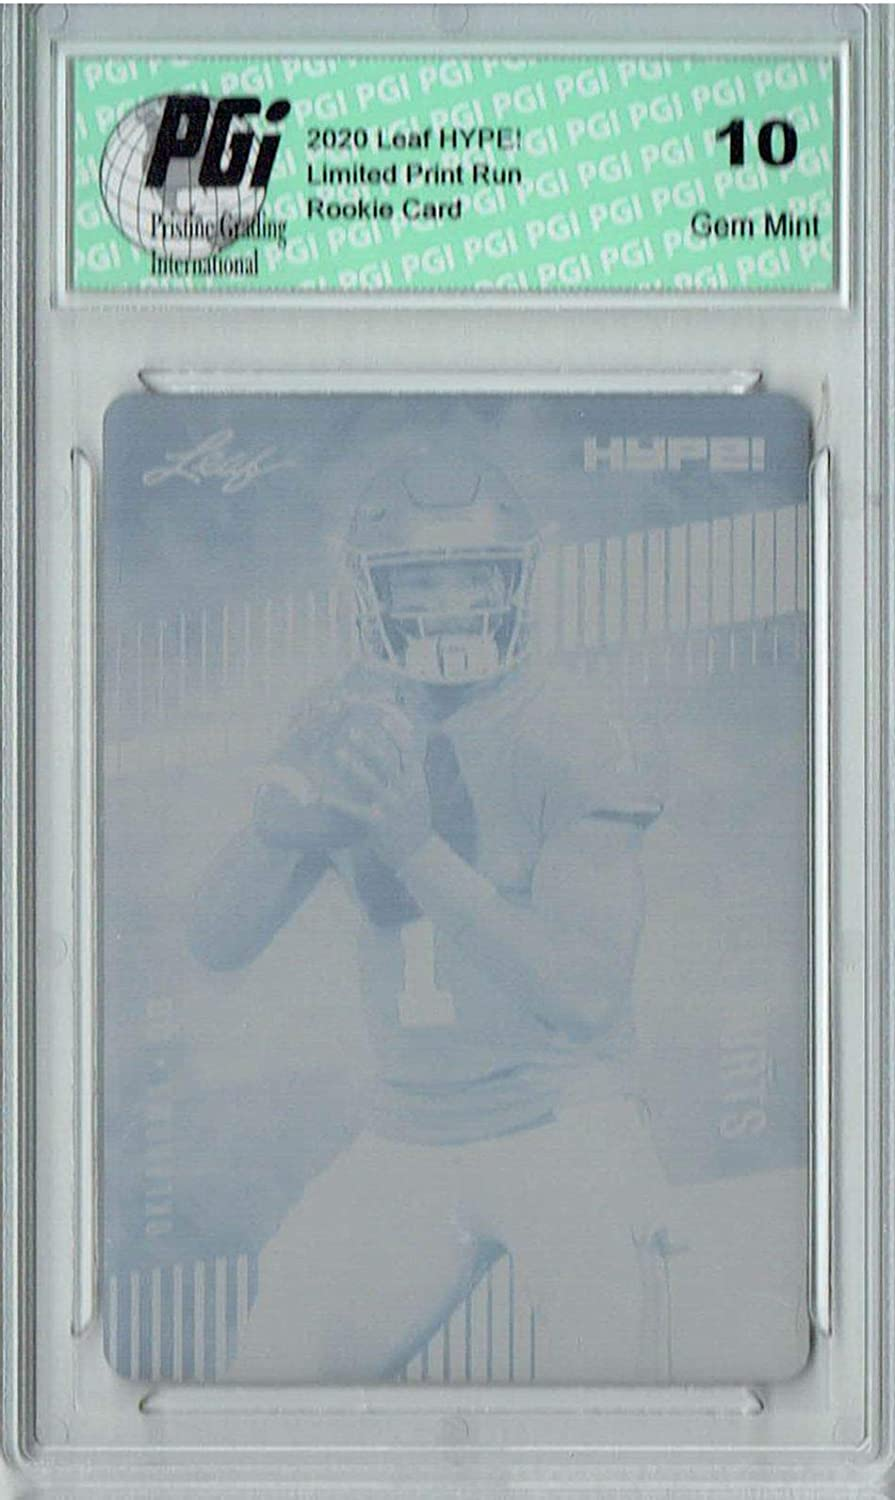 Quality inspection Jalen Hurts 2020 Leaf HYPE #28 C Ranking integrated 1st place Cyan 1 Plate Rookie Printing